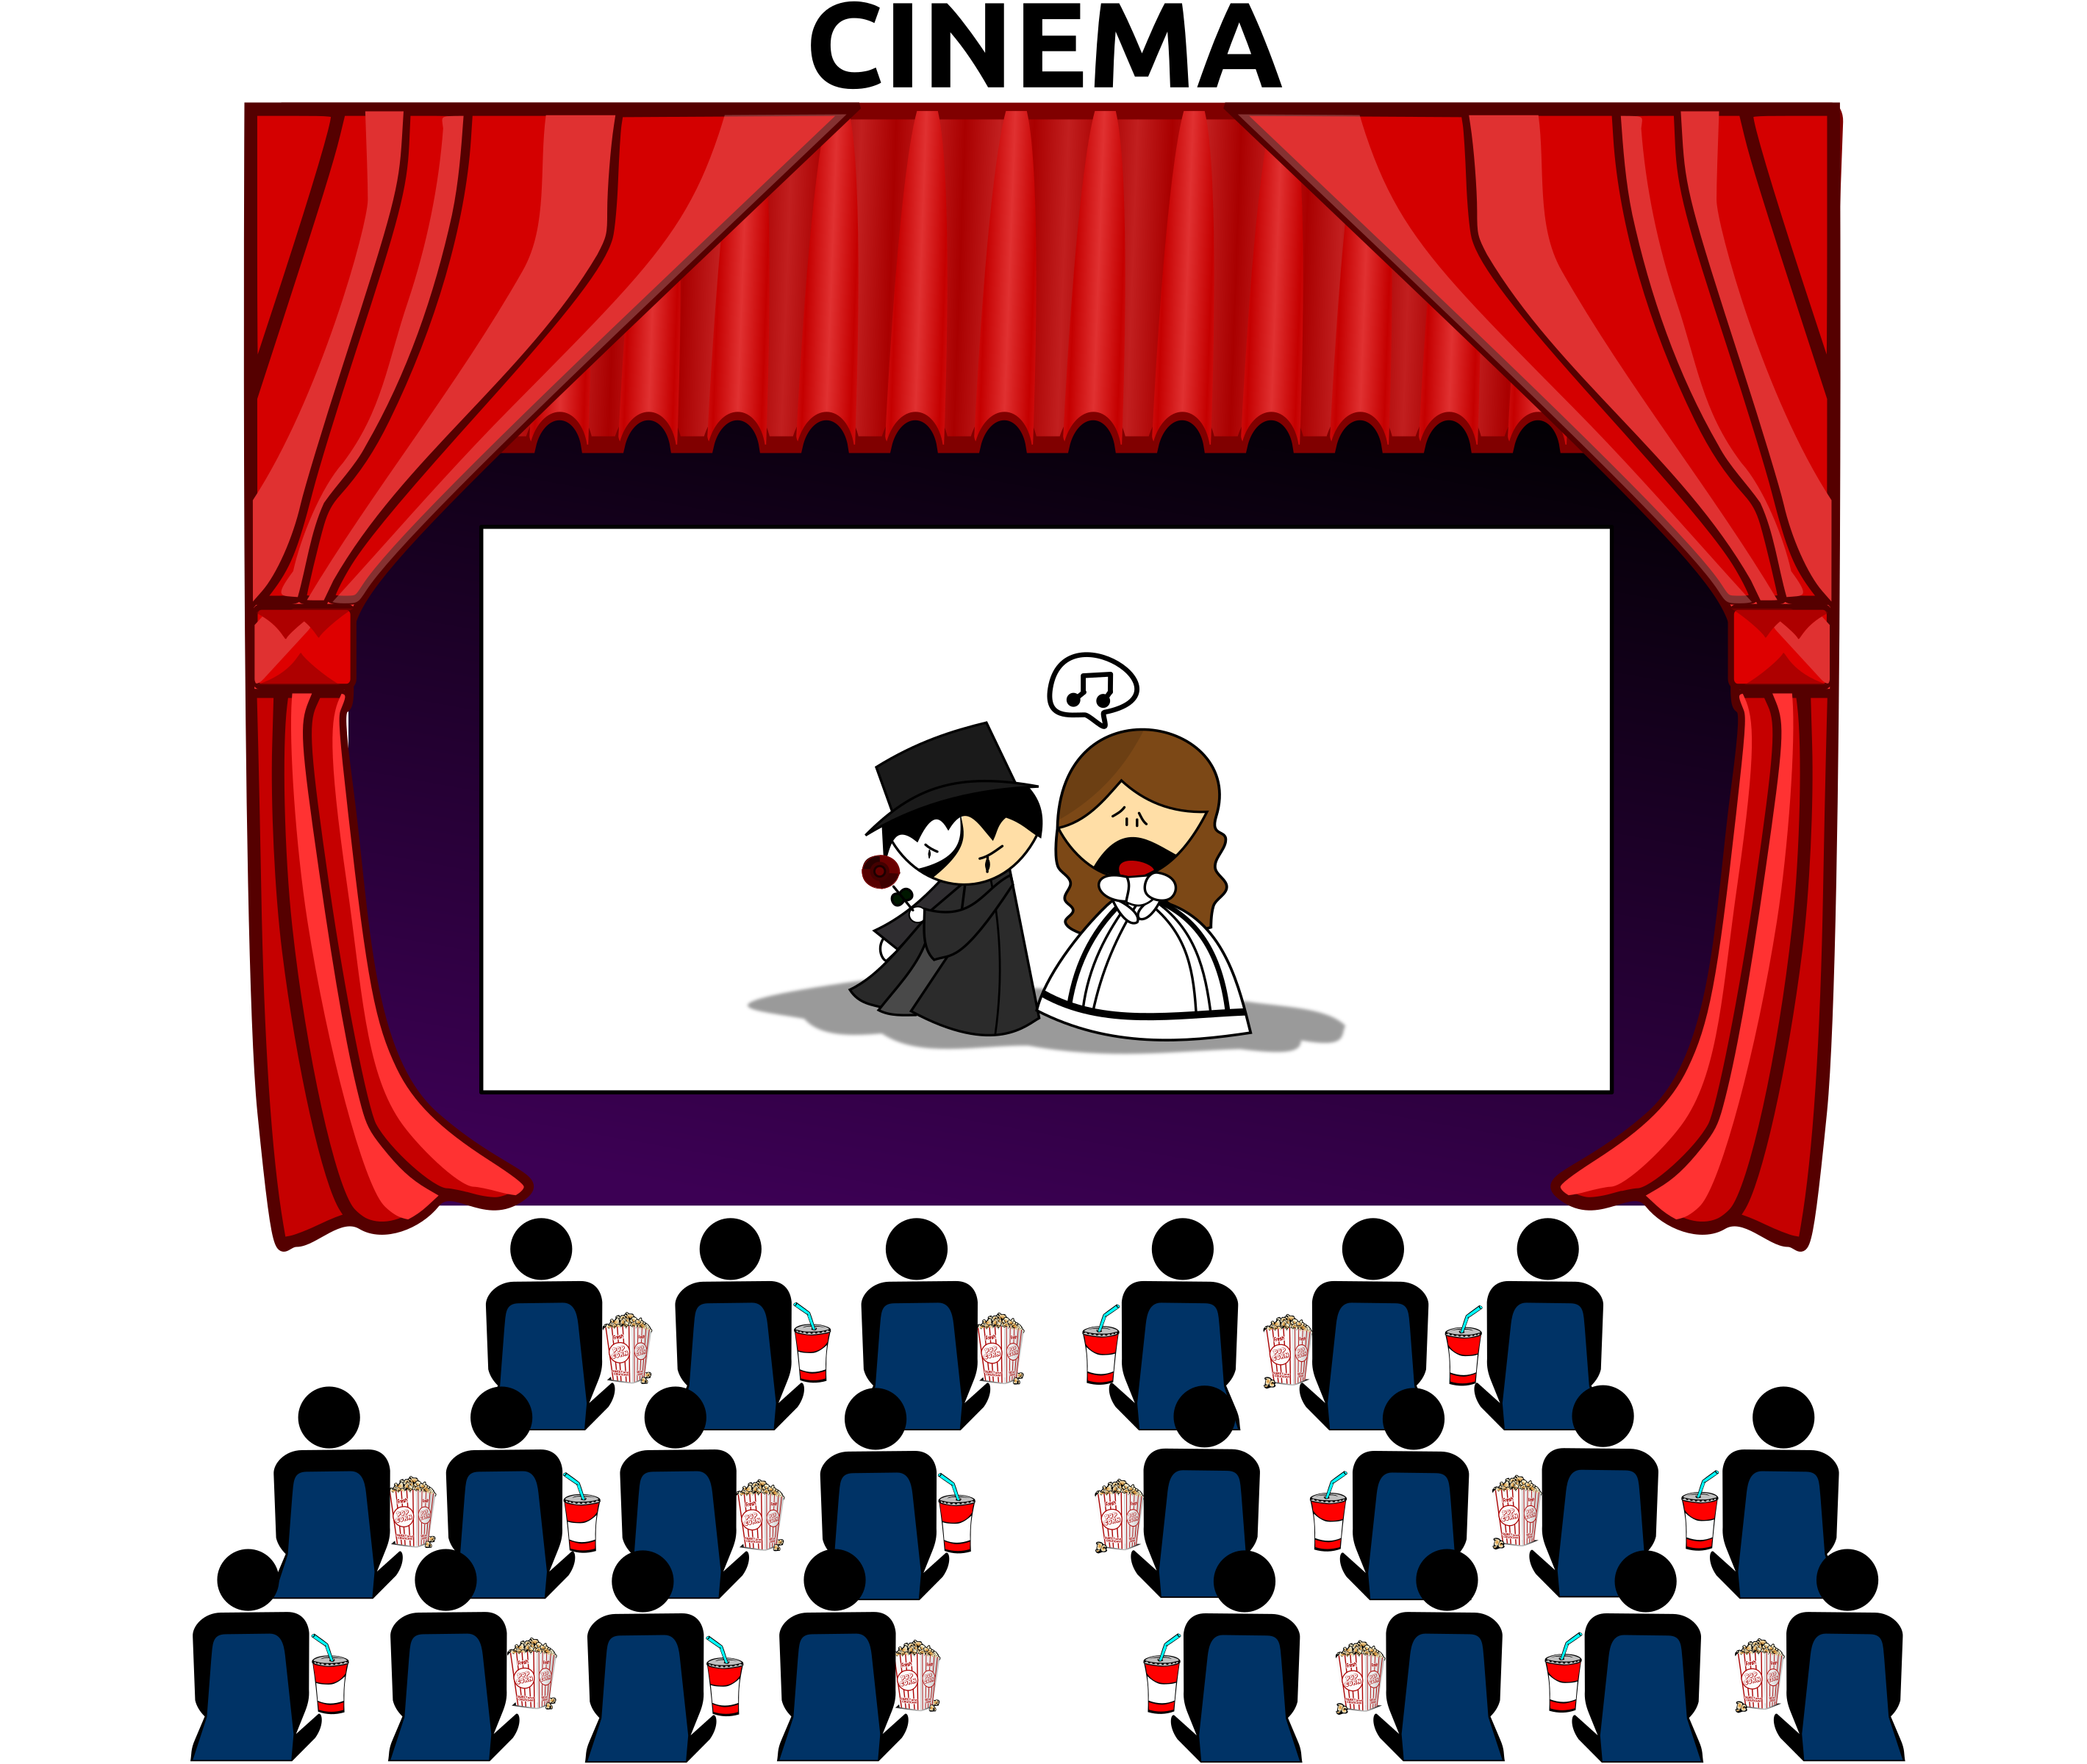 png library download Cinema icons png free. Theater clipart theatre seating